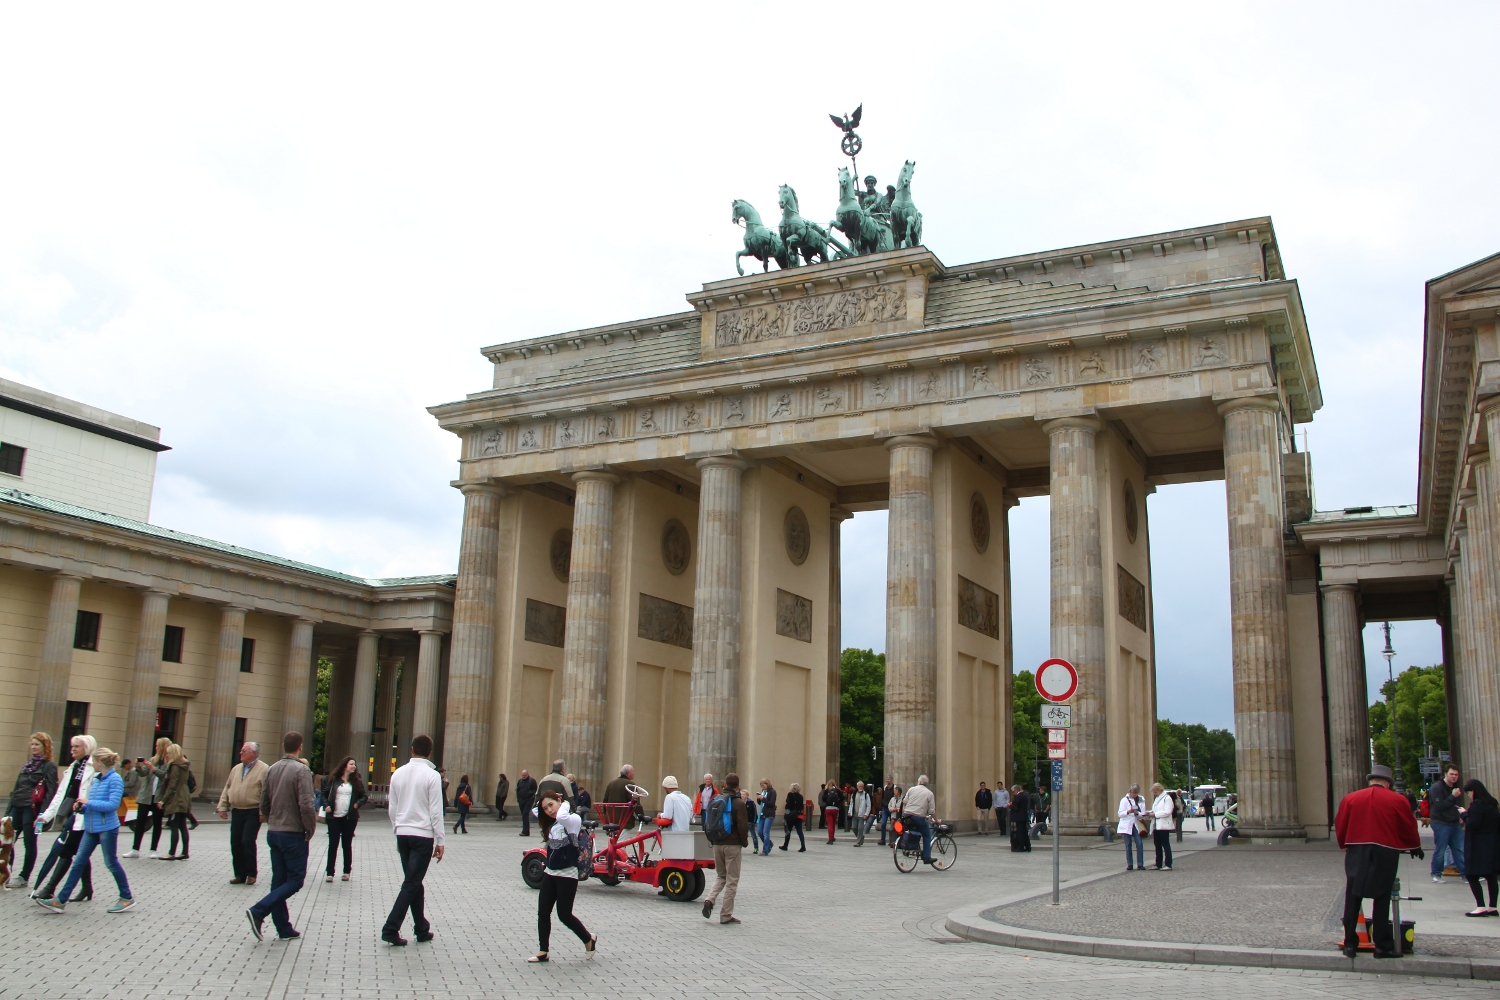 The Brandenburg Gate: history and photos